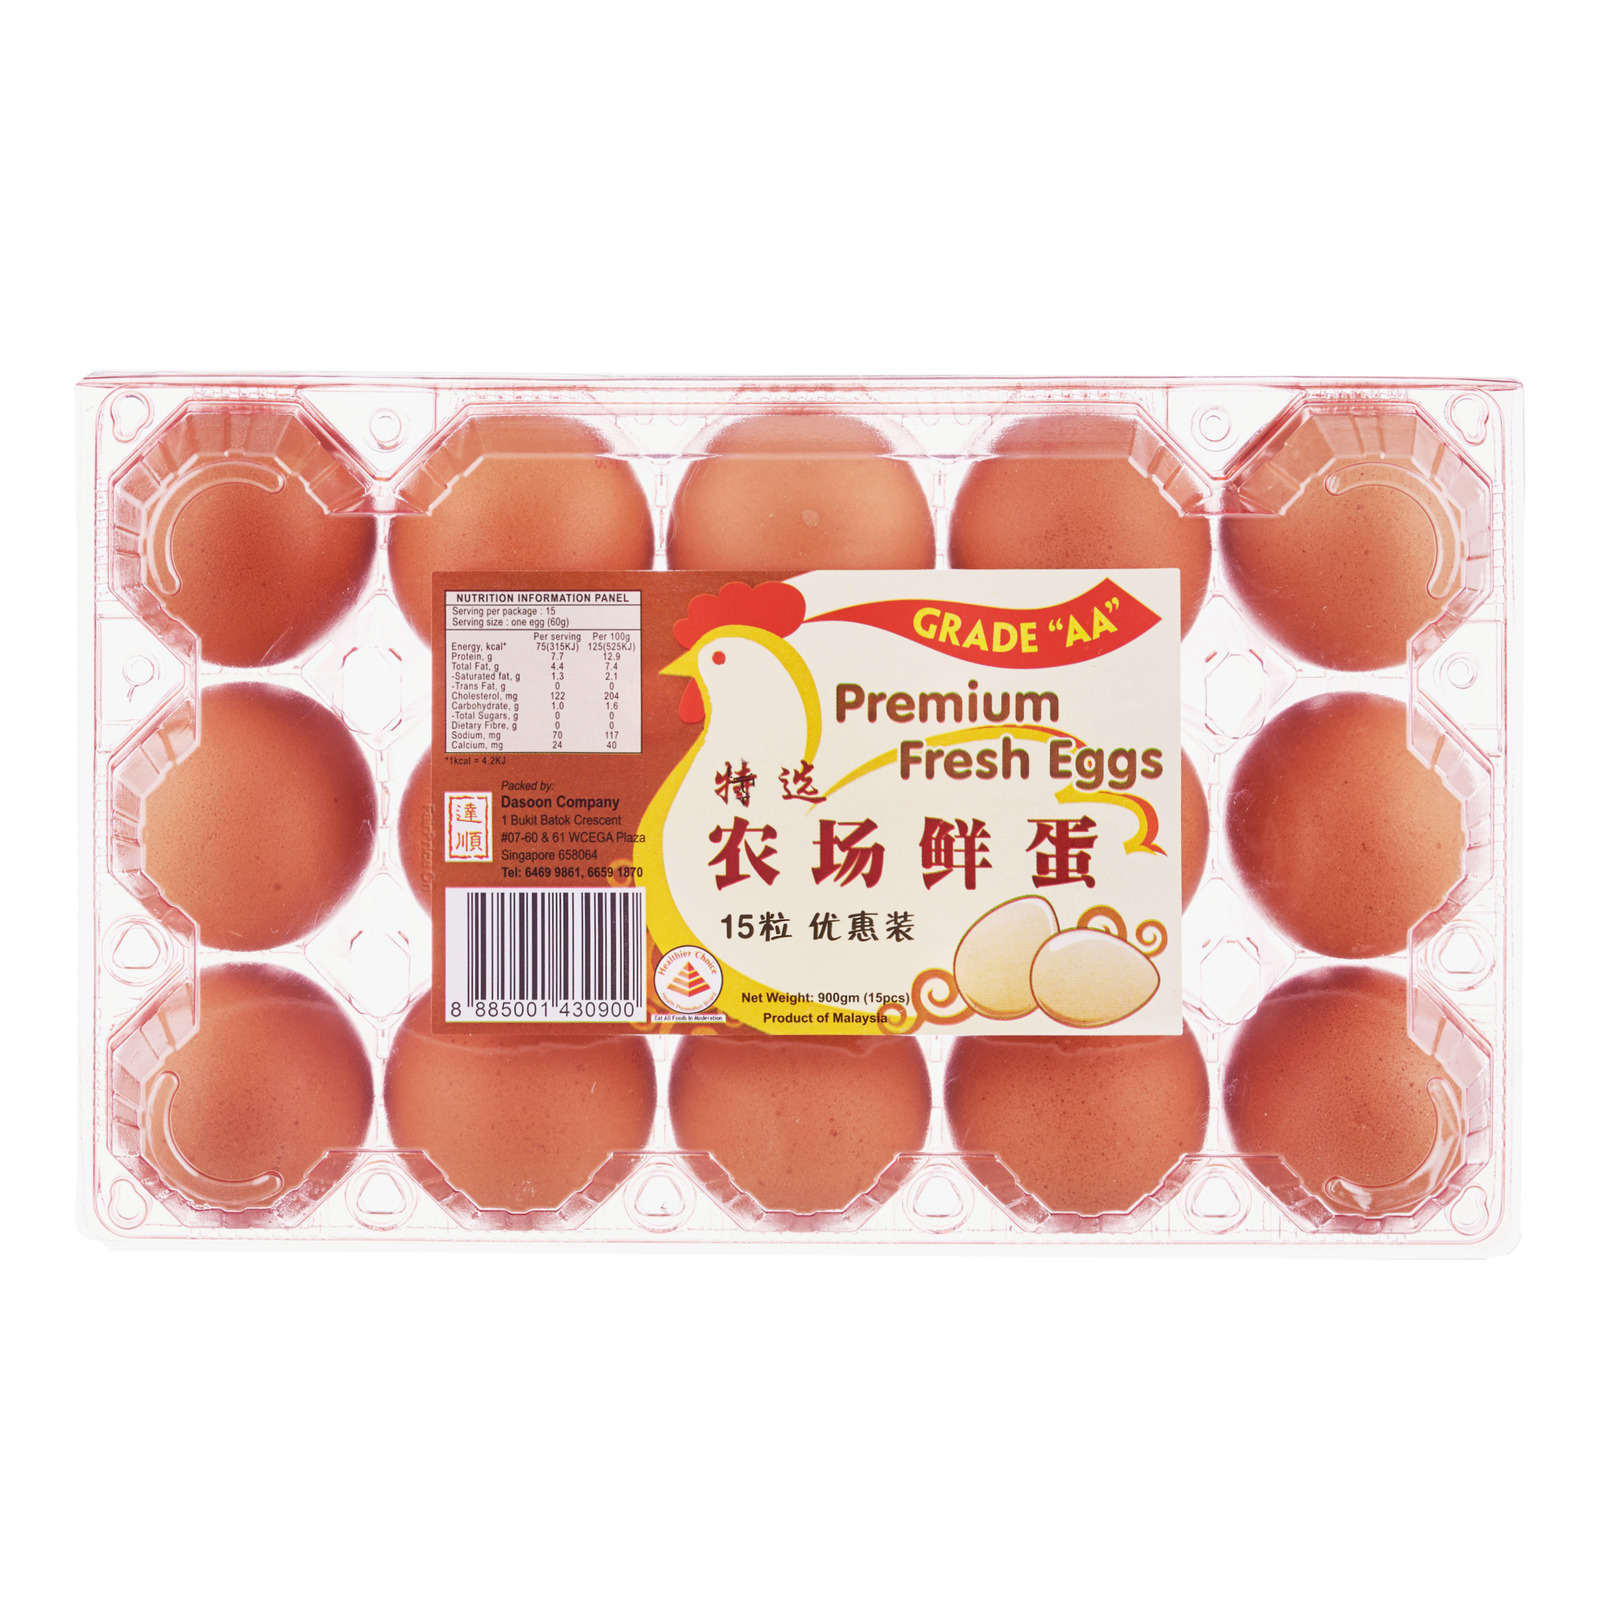 GIANT Premium Fresh Eggs 15s